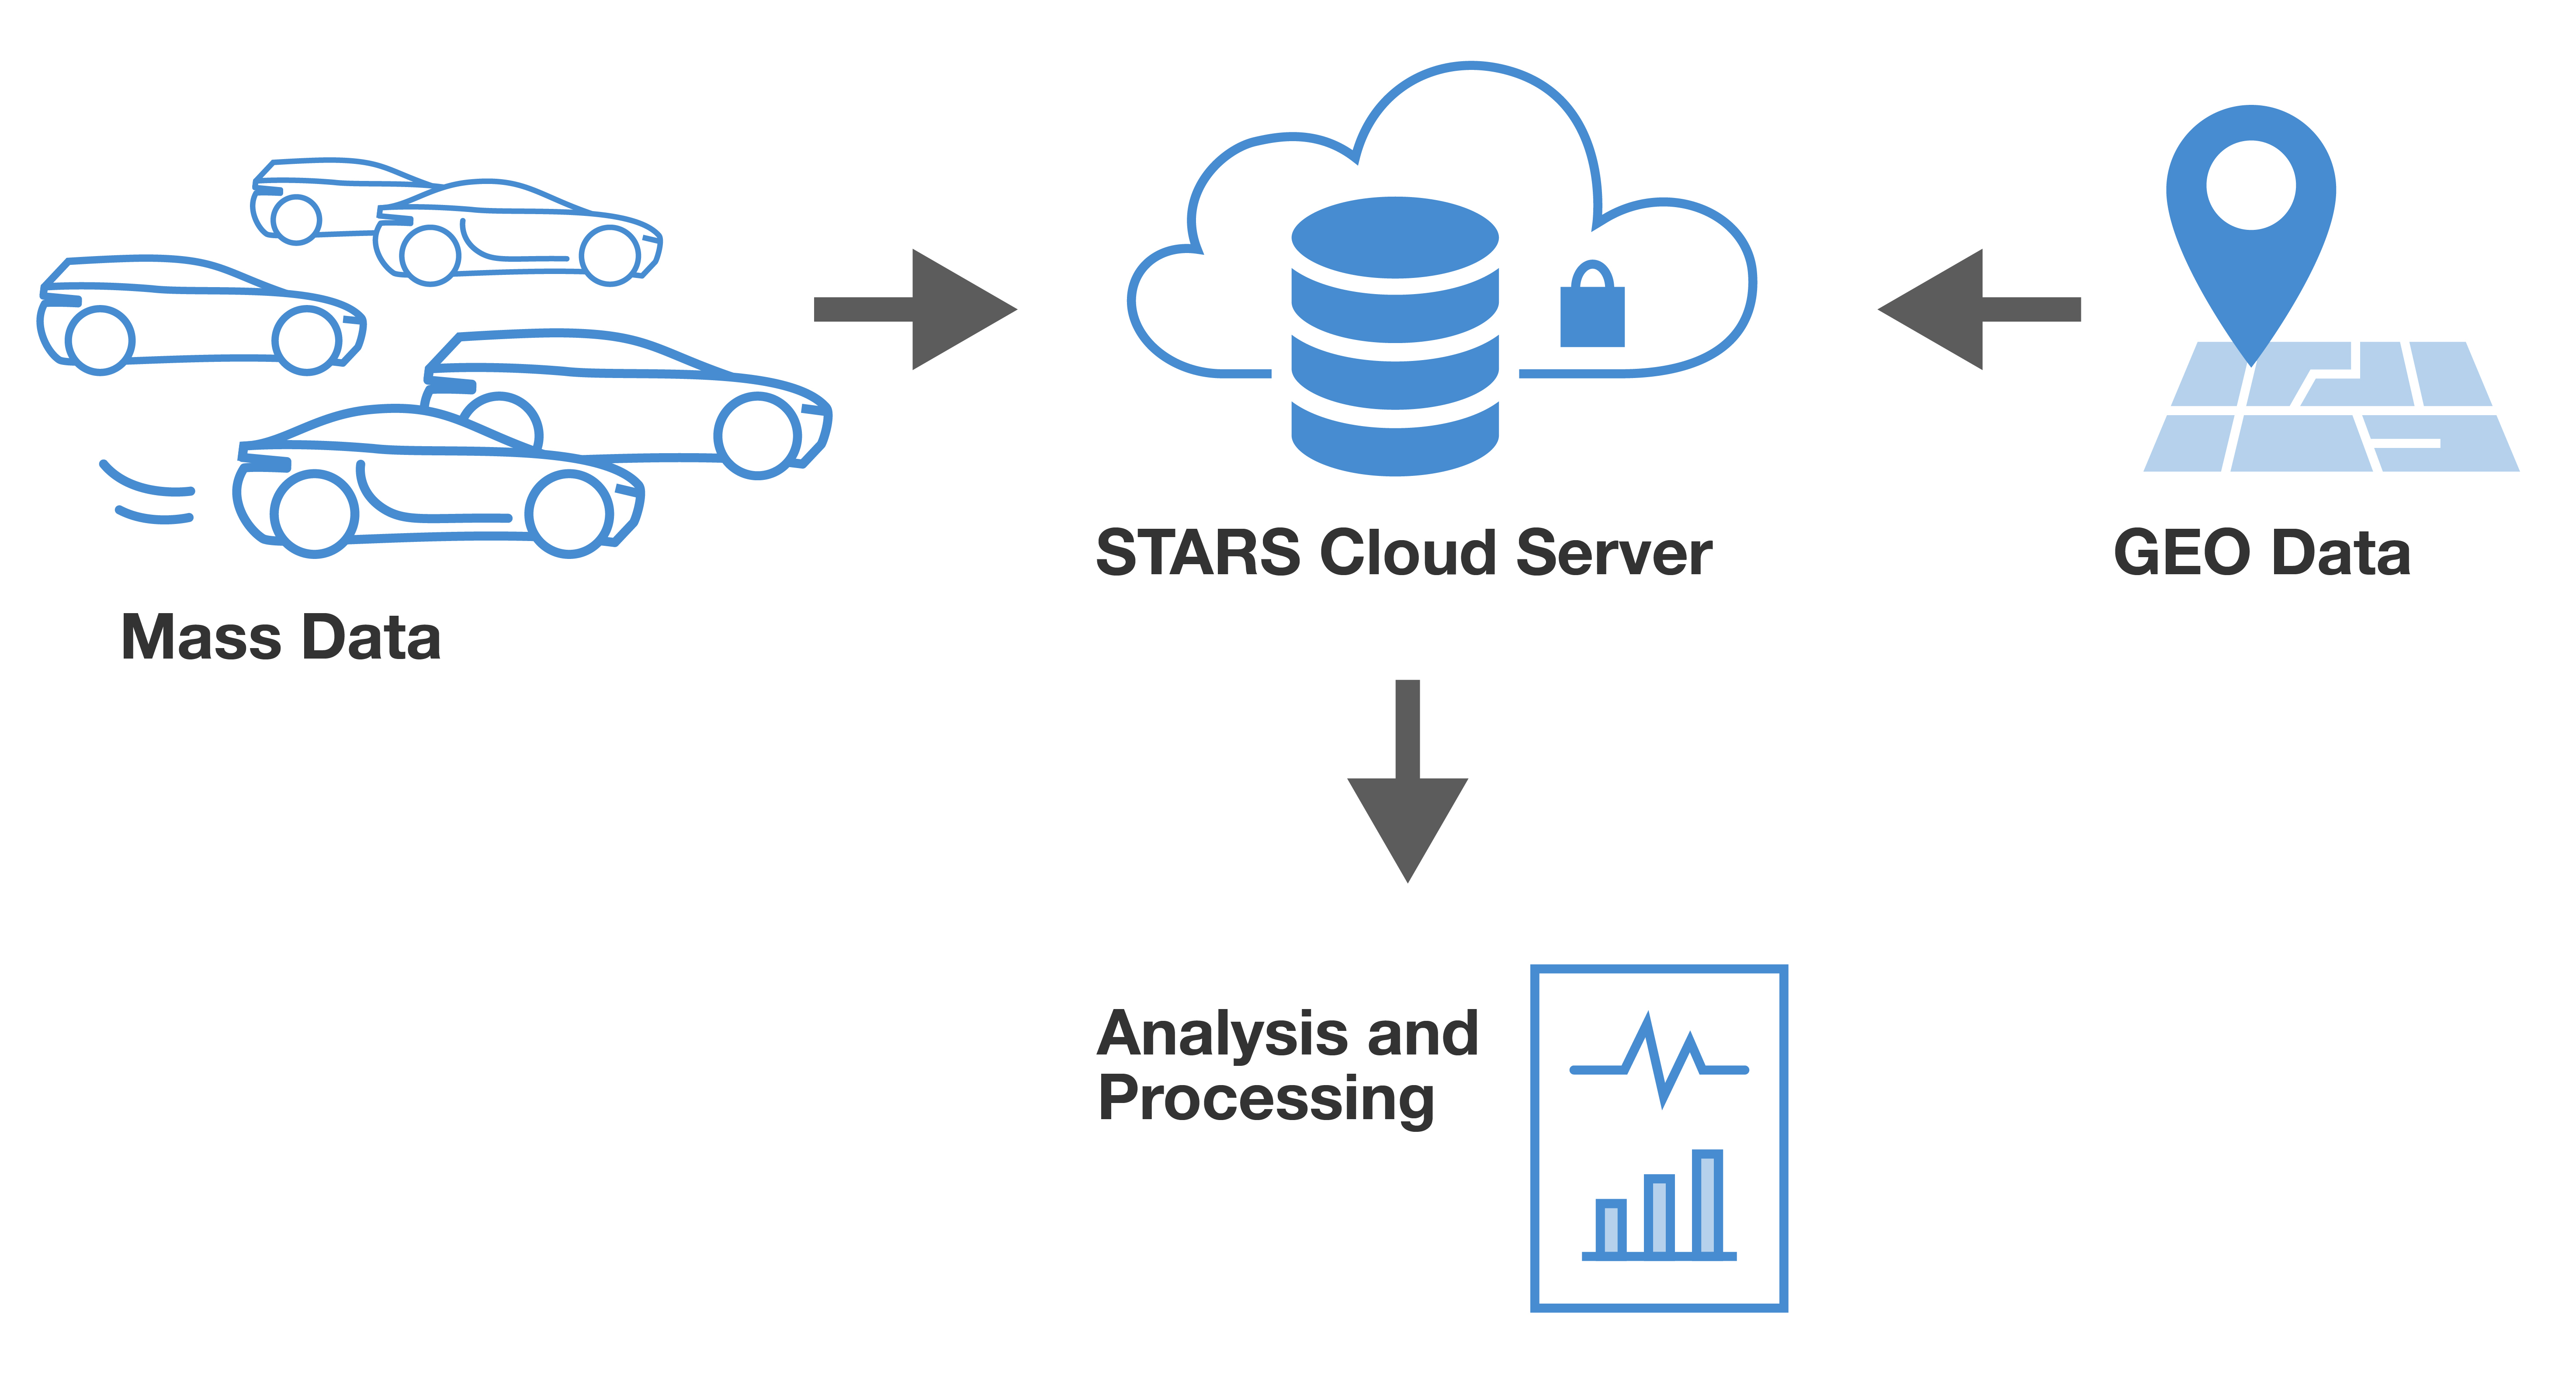 Mass Data Management of Emission Data with SEMS